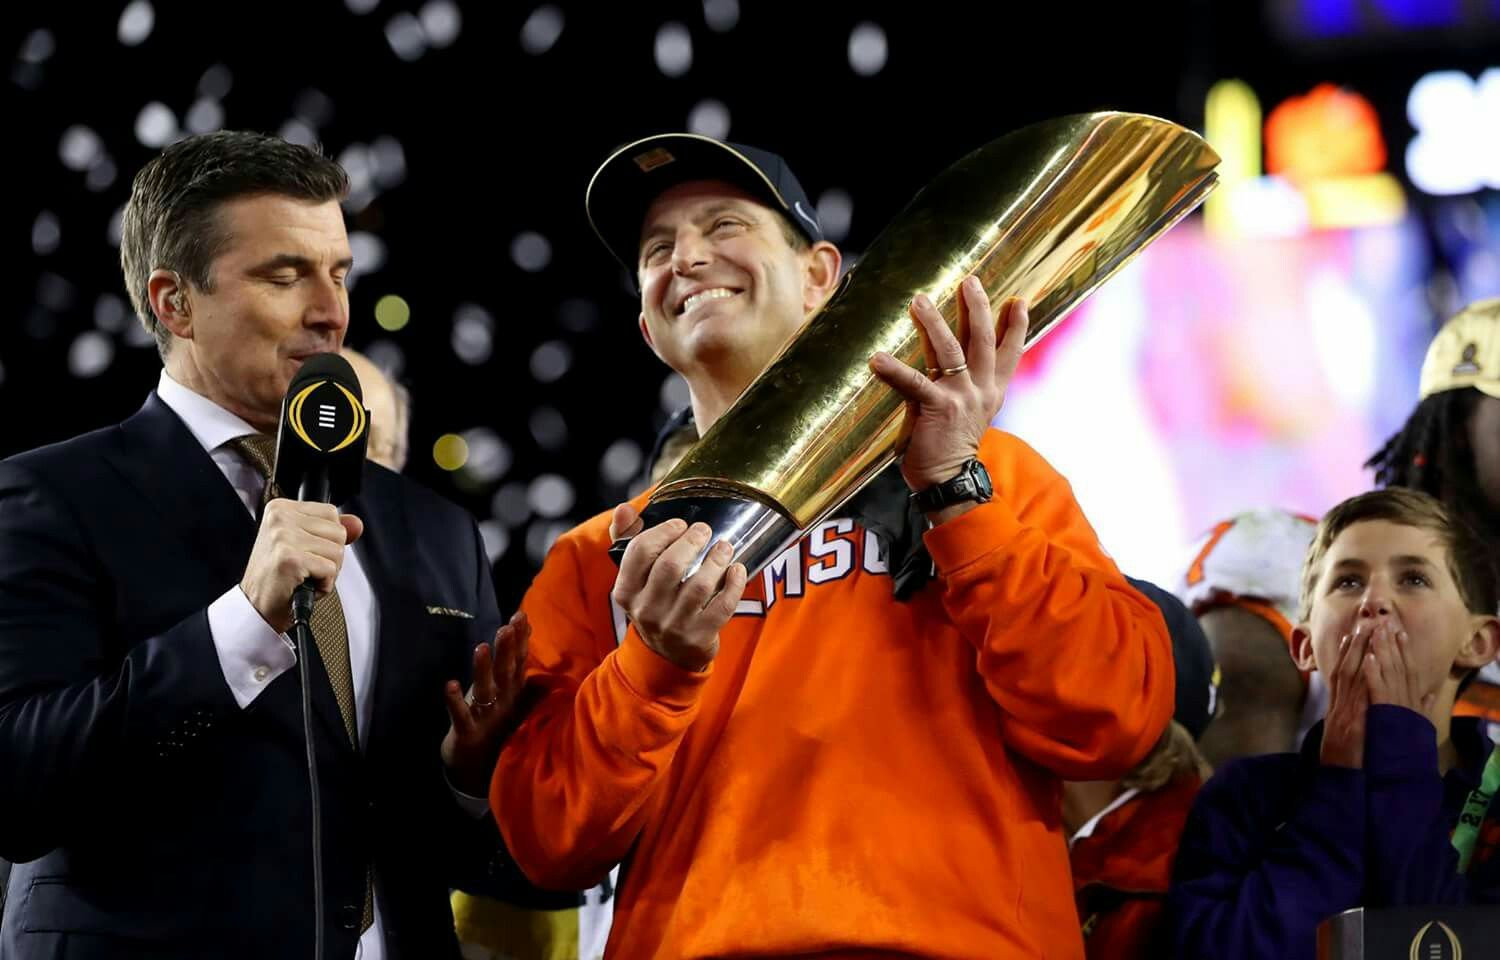 Dabo Swinney with national championship trophy (With ...